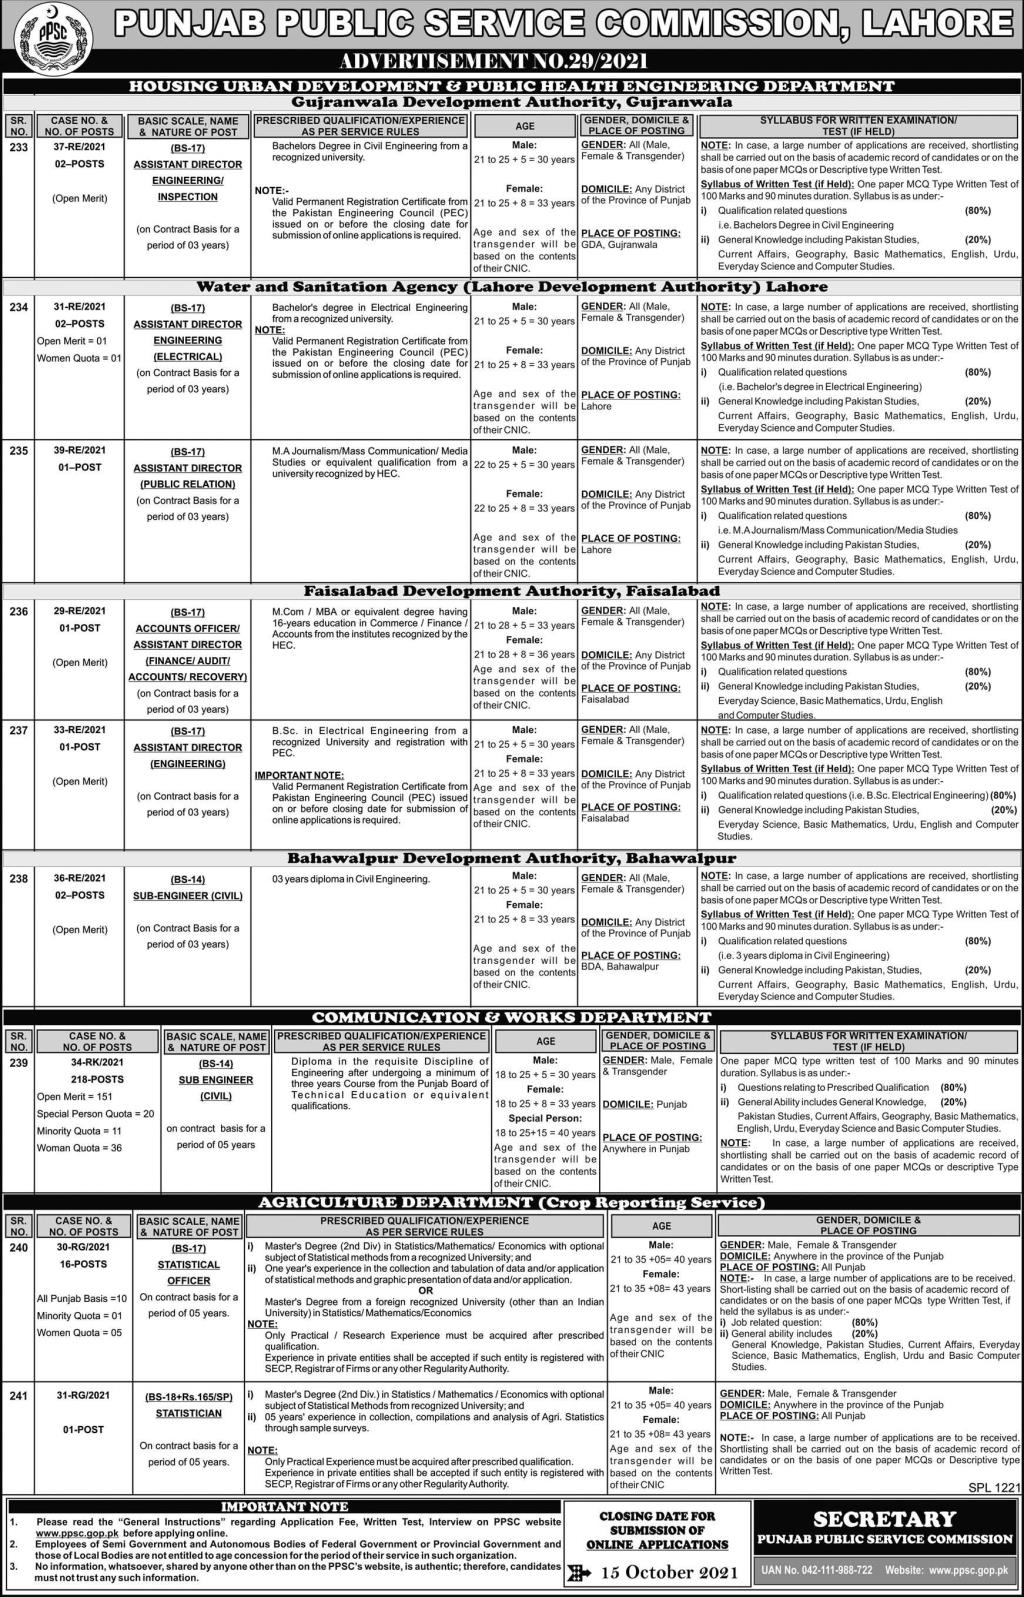 PPSC Jobs 2021 - Latest Advertisement No 29/2021 - Apply Now